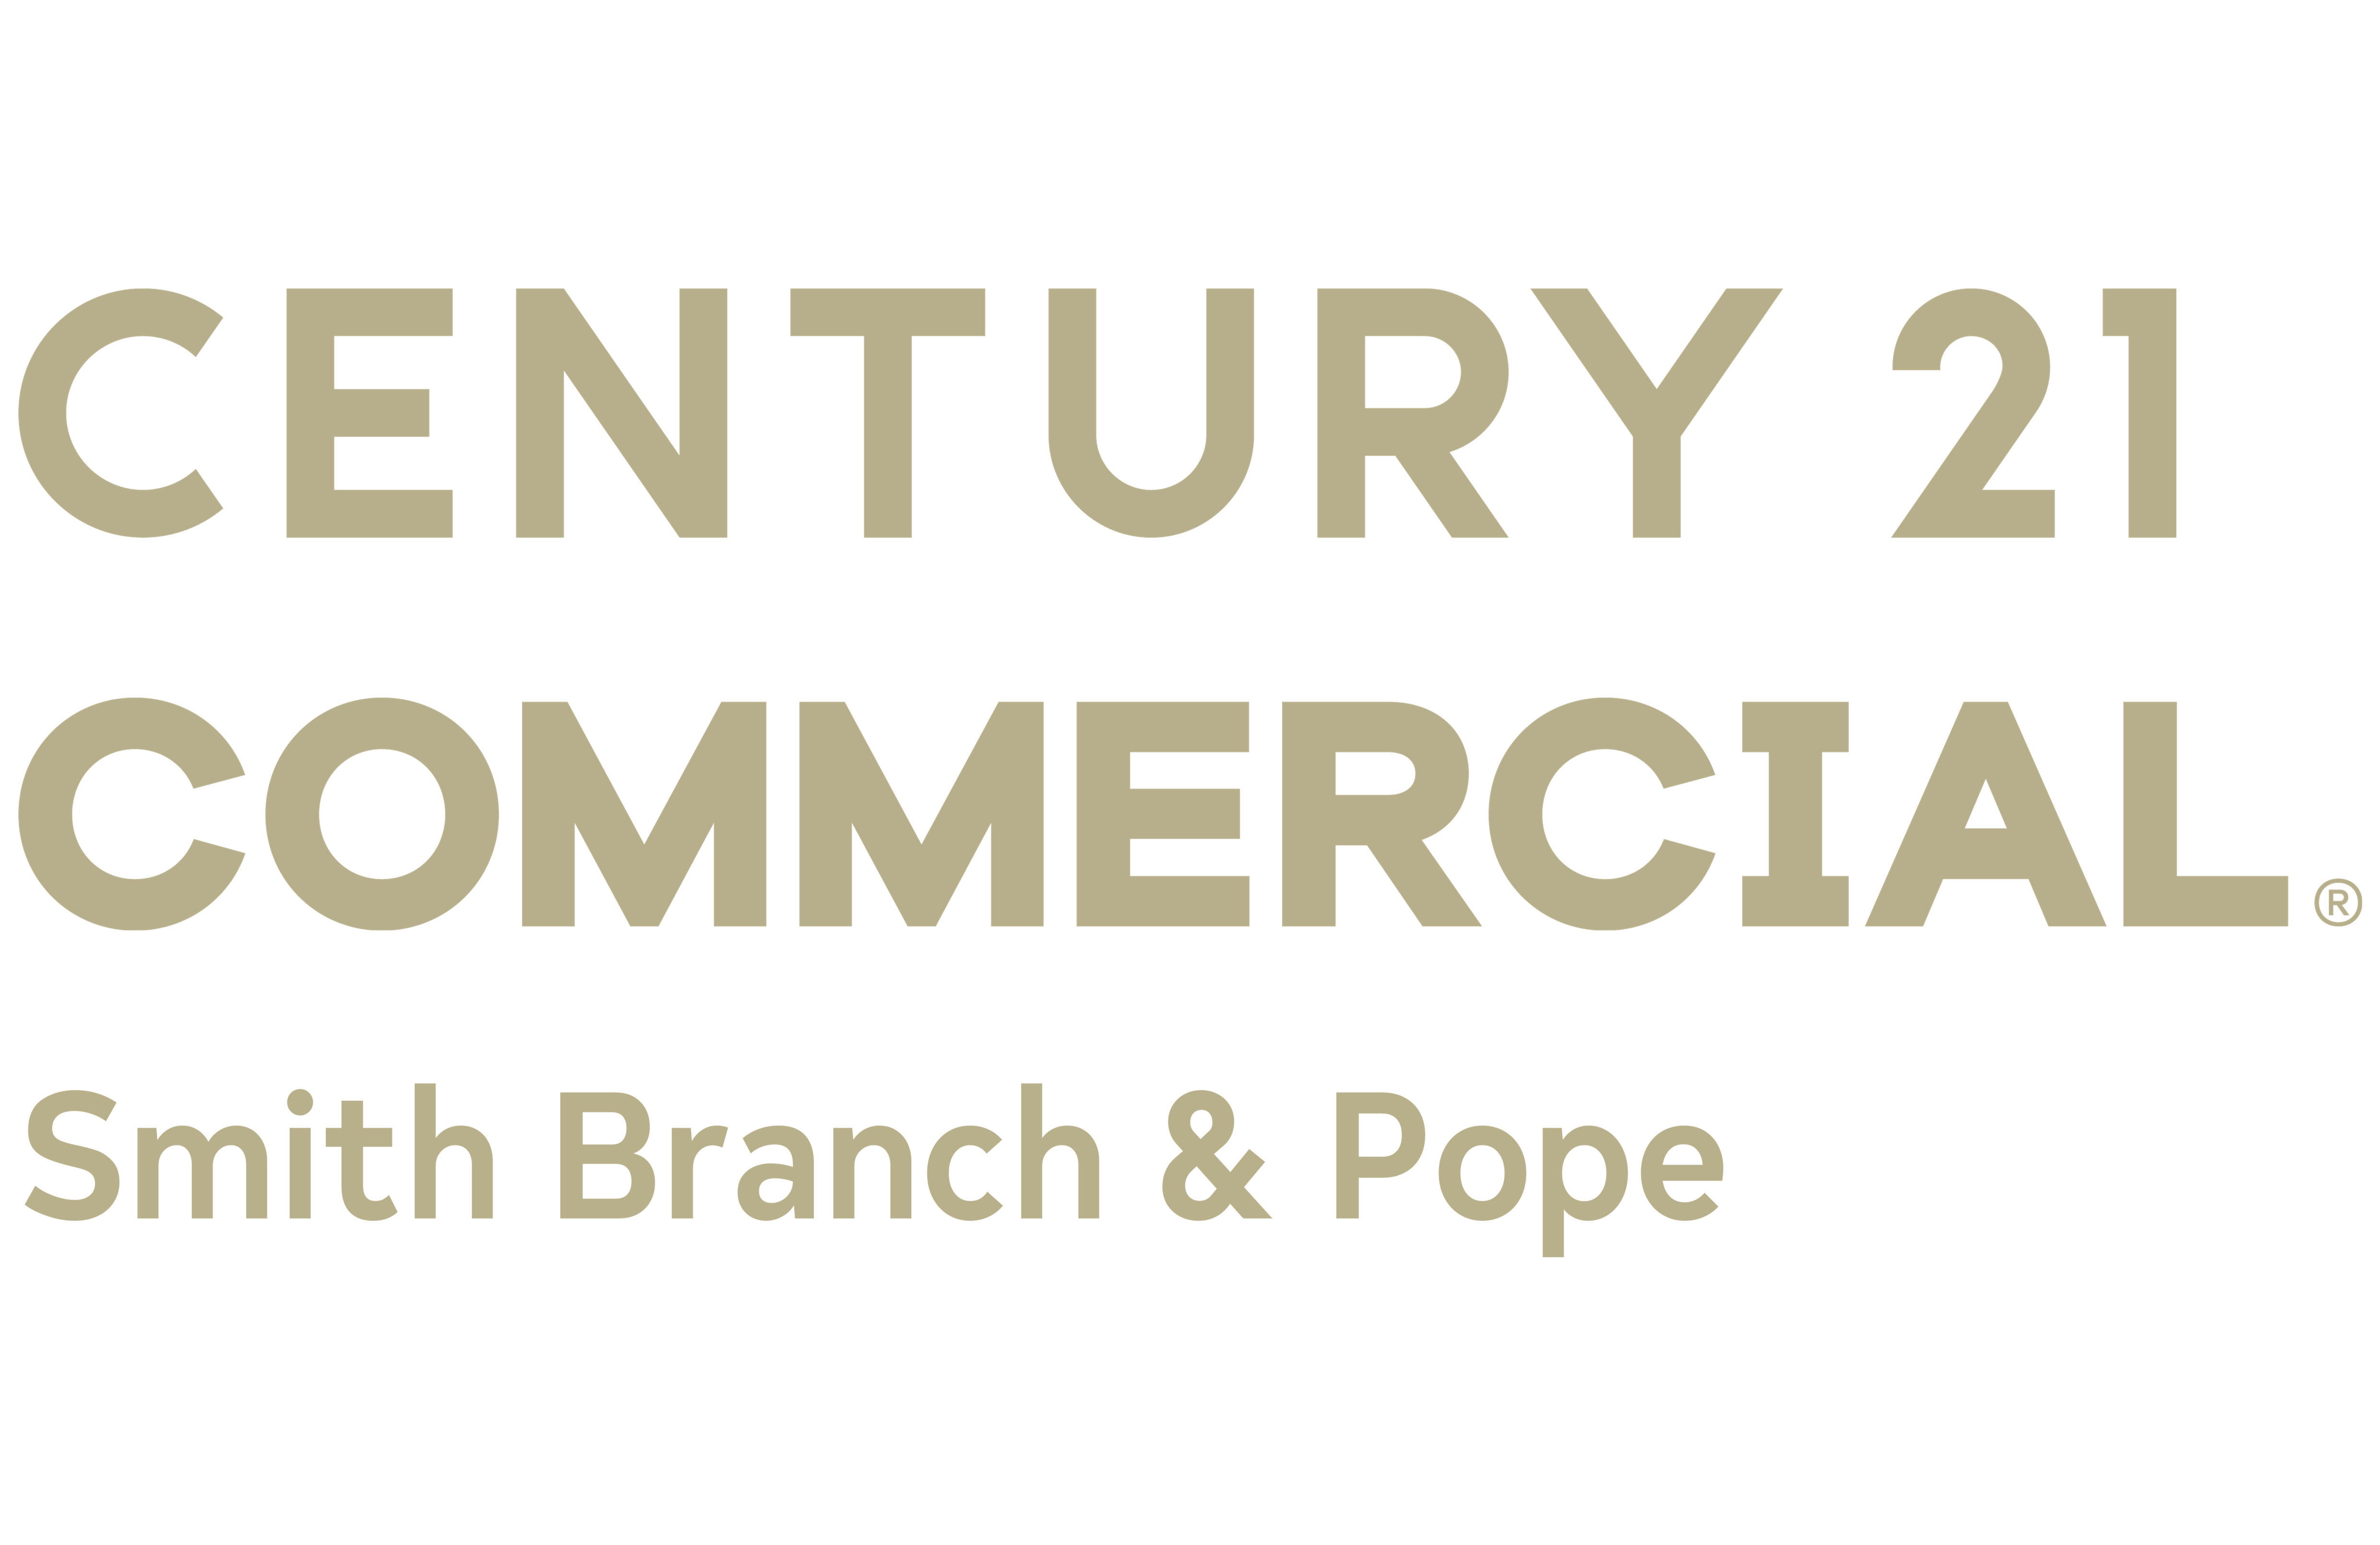 CENTURY 21 Smith Branch & Pope